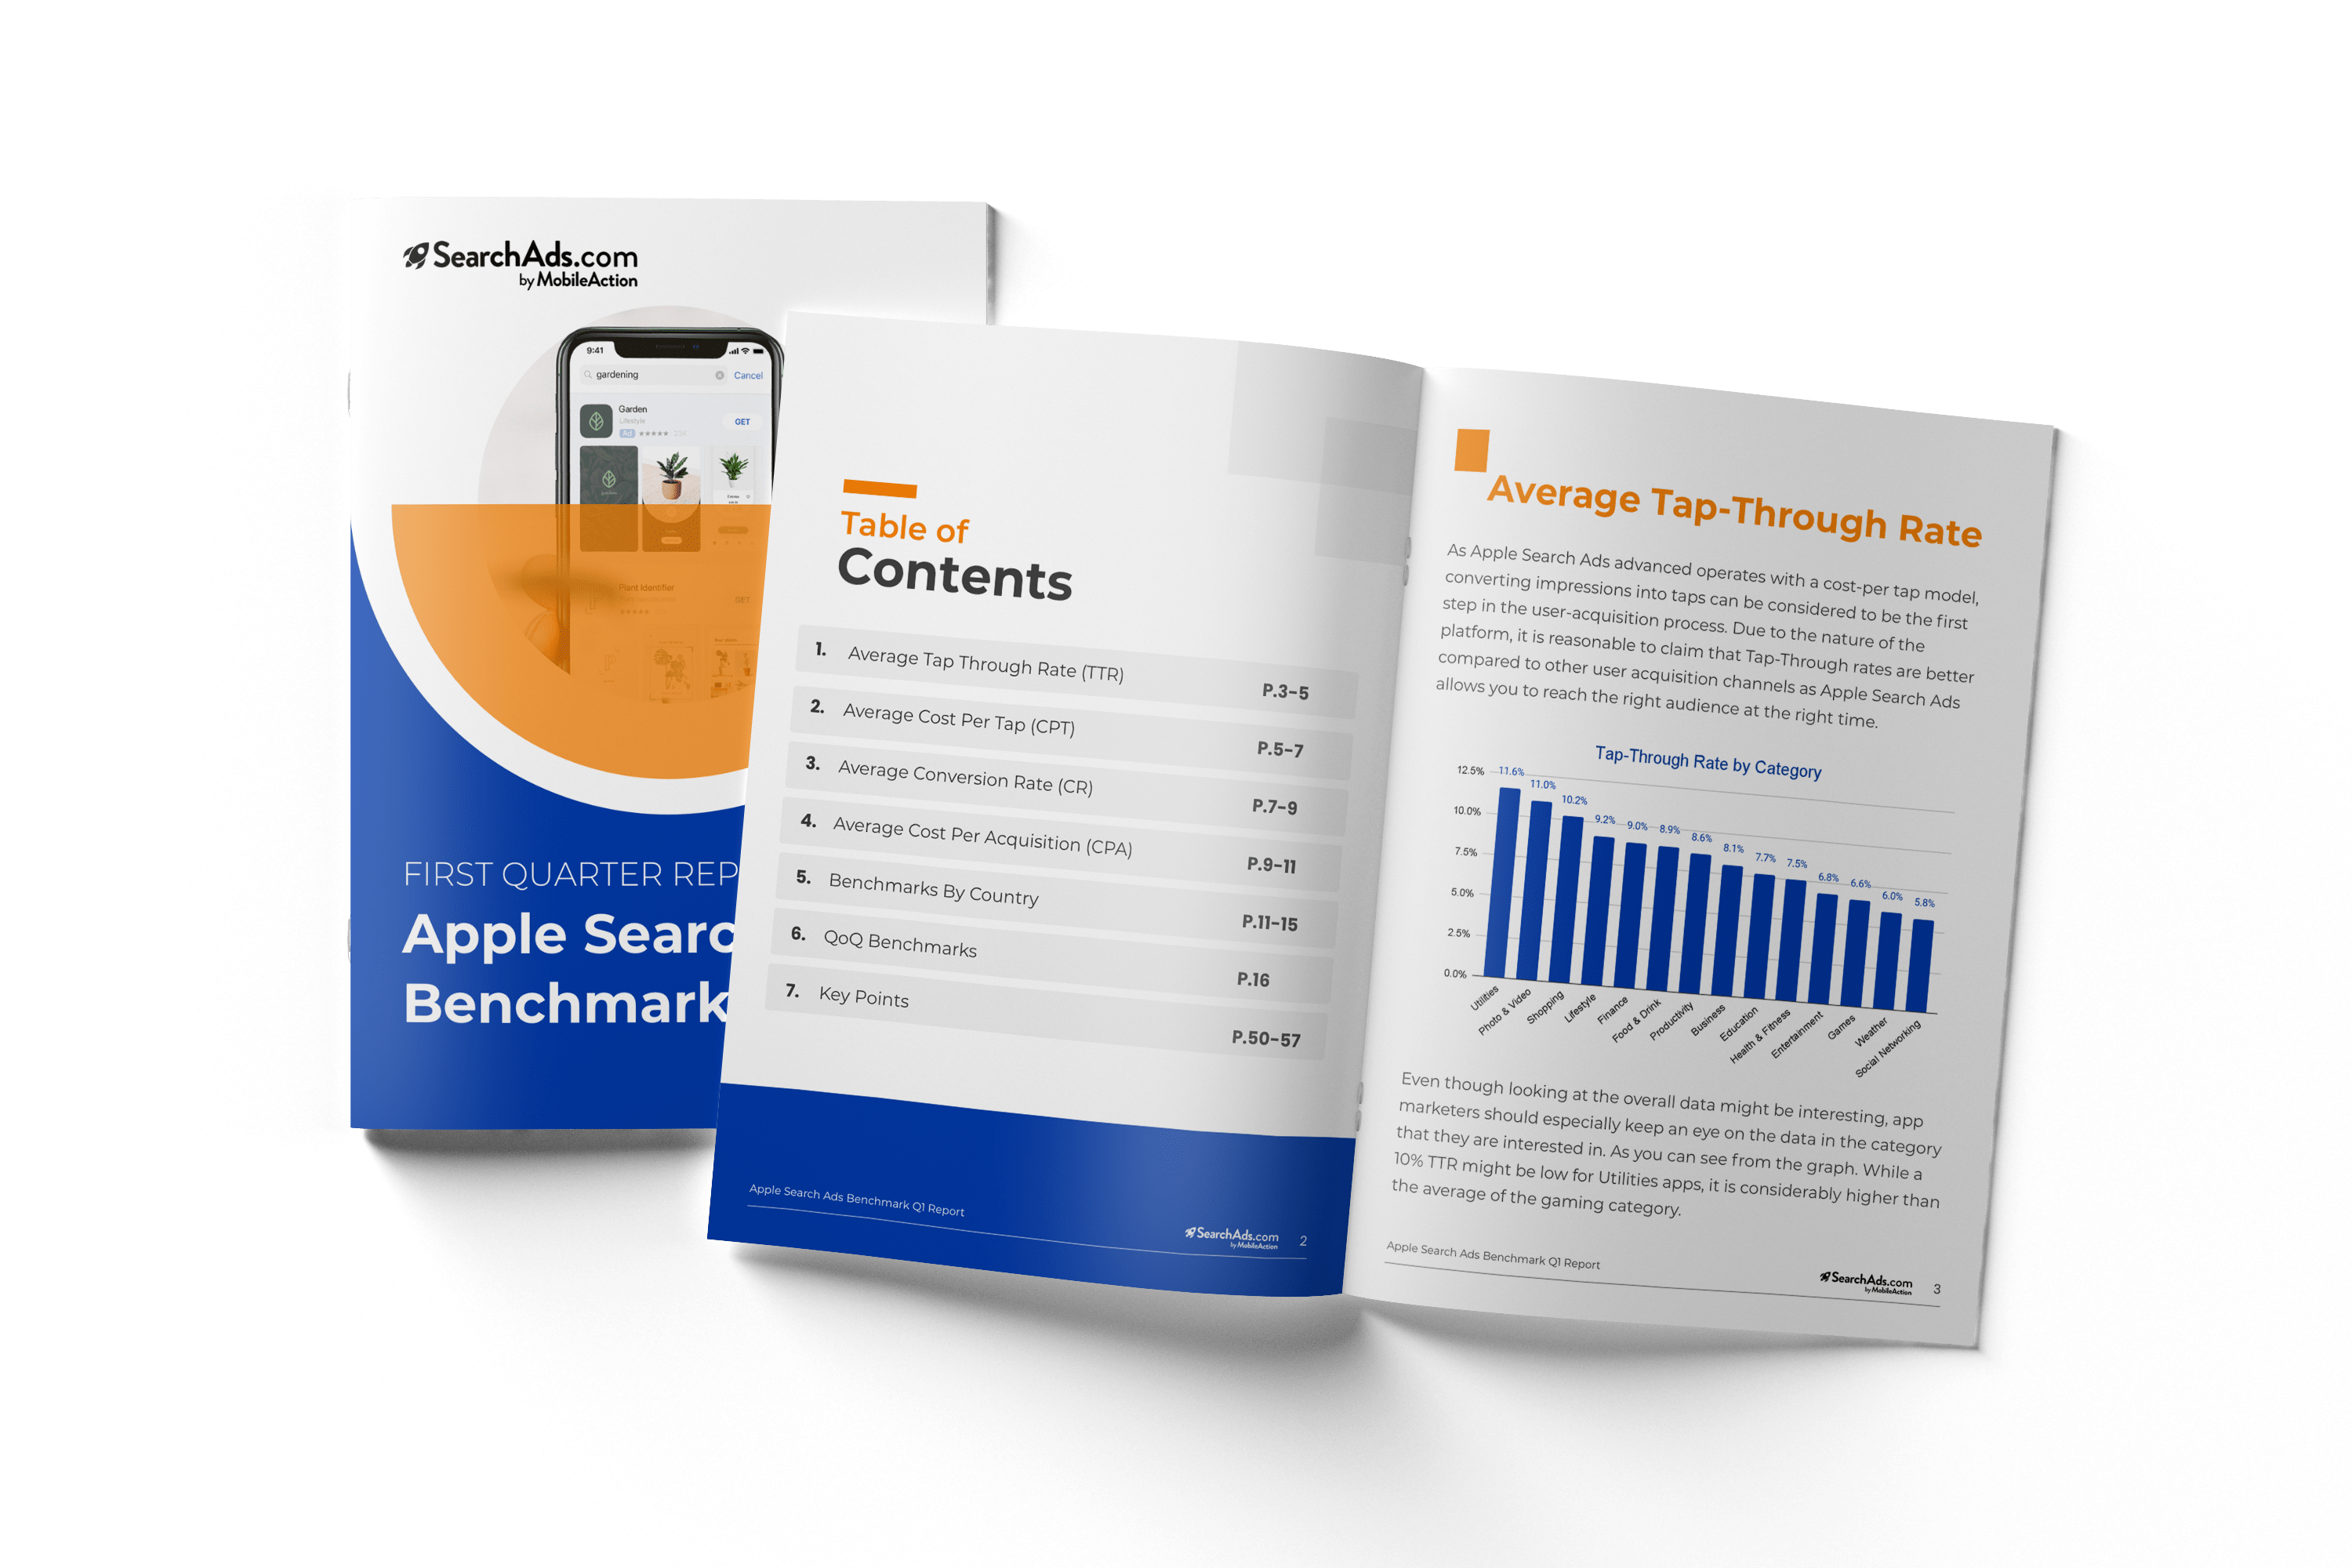 Apple Search Ads Benchmarks Q1 Report 2021